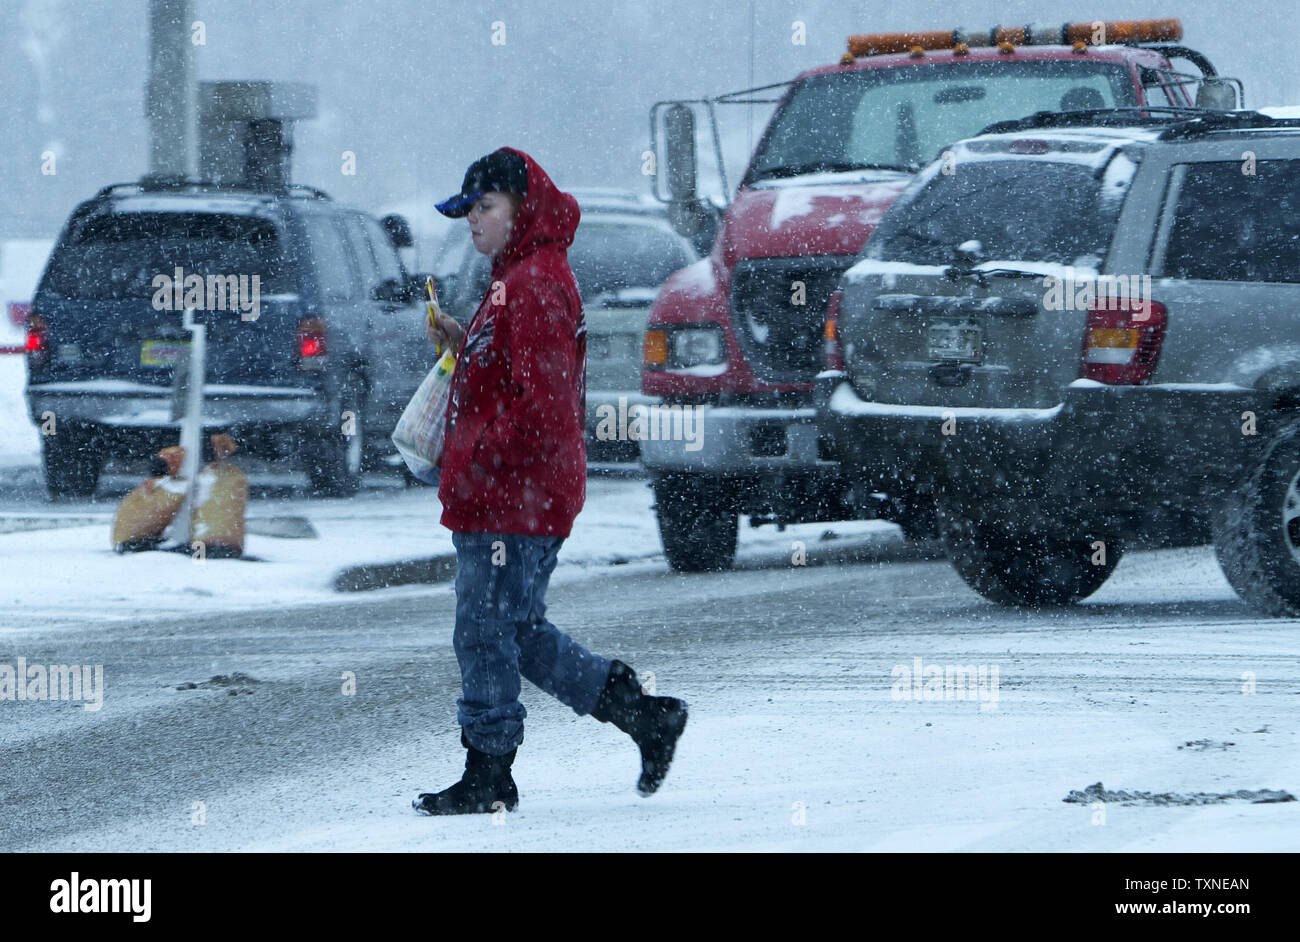 A pedestrian crosses the road as the snow begins to fall heavily during a winter storm in Denver on December 30, 2010.               UPI/Gary C. Caskey - Stock Image